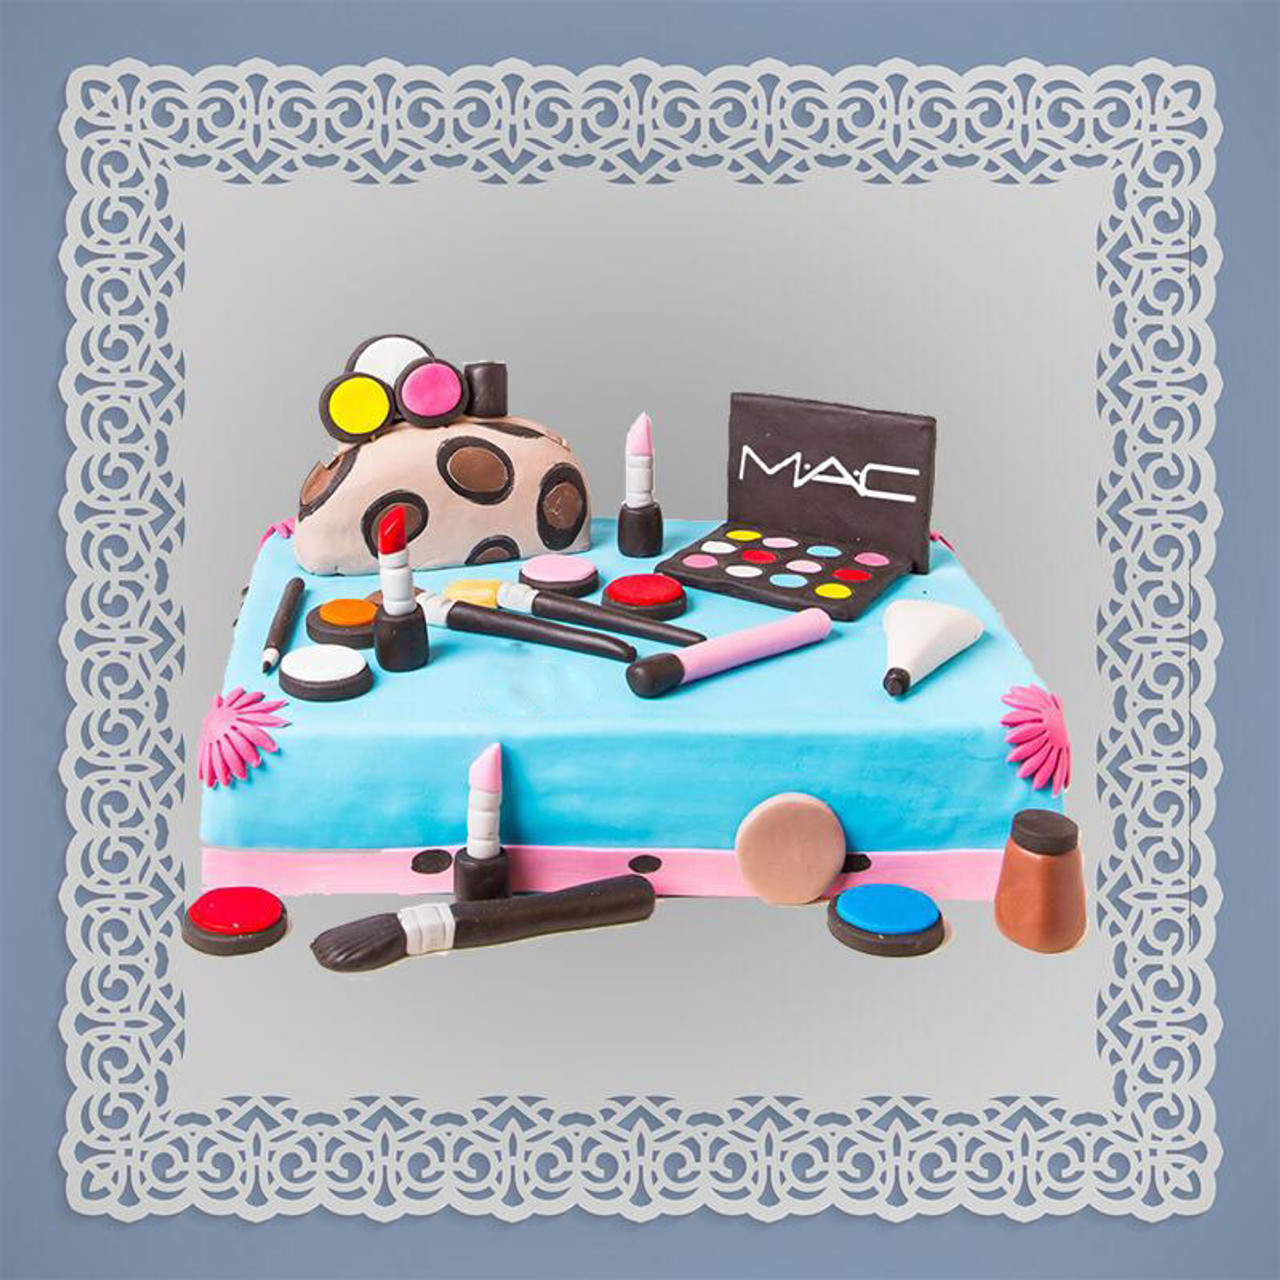 Remarkable Online Gift Shop Customized Cakes Make Up Customized Cake Funny Birthday Cards Online Alyptdamsfinfo